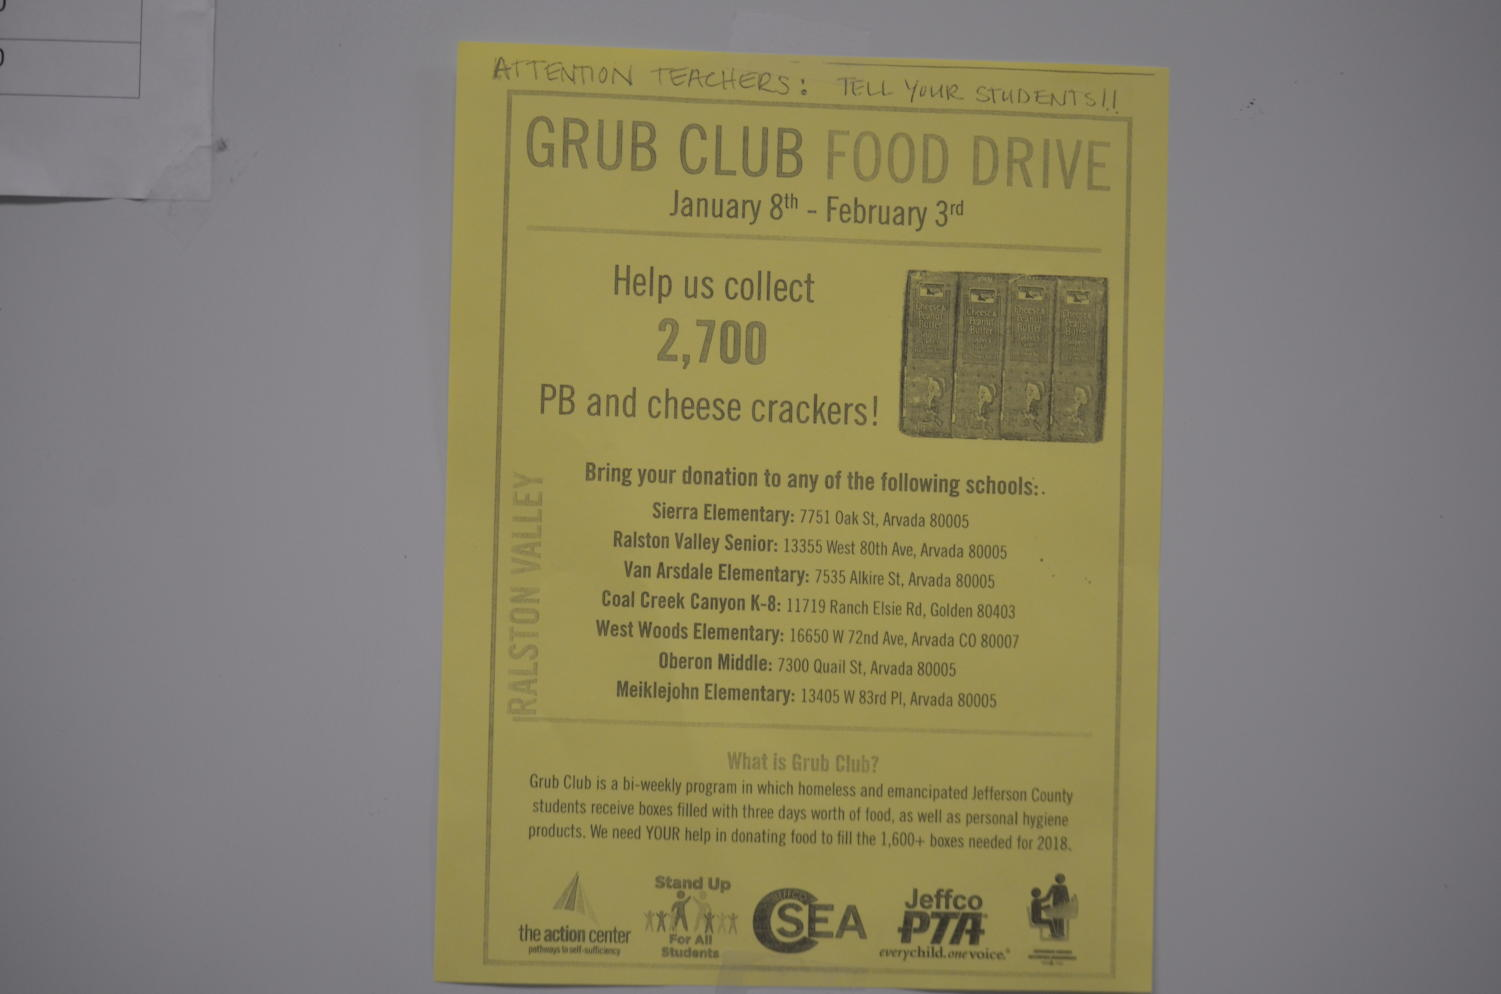 Looking to help out some teens in need? RV, along with other area schools, are helping collect food for kids who are in need.